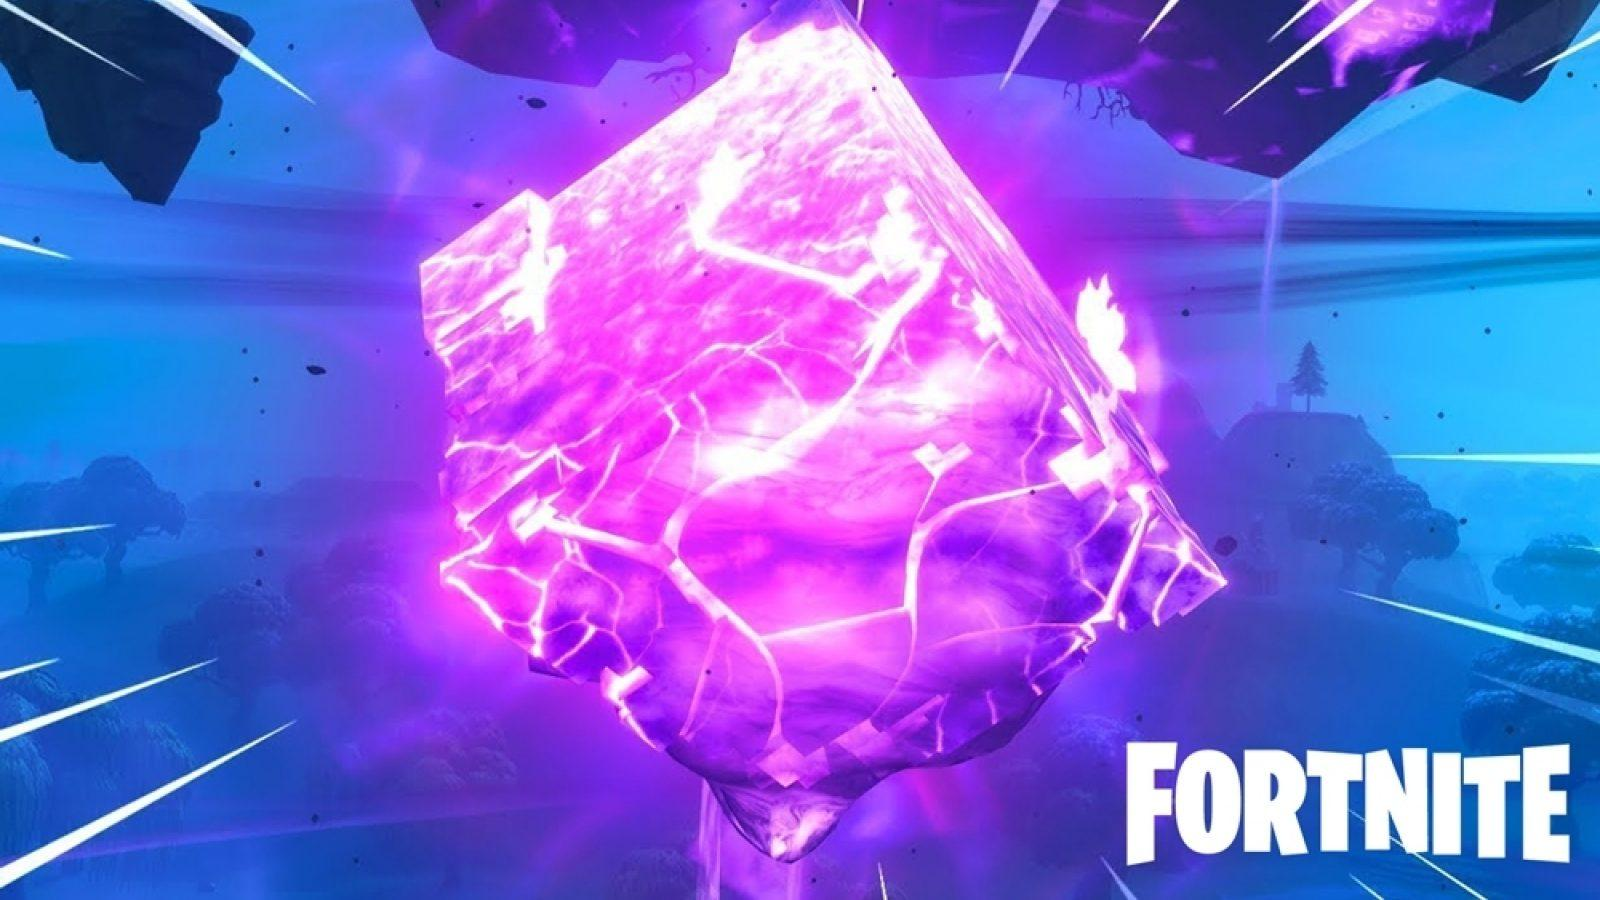 Fortnite: New game files point to the return of Kevin the Cube